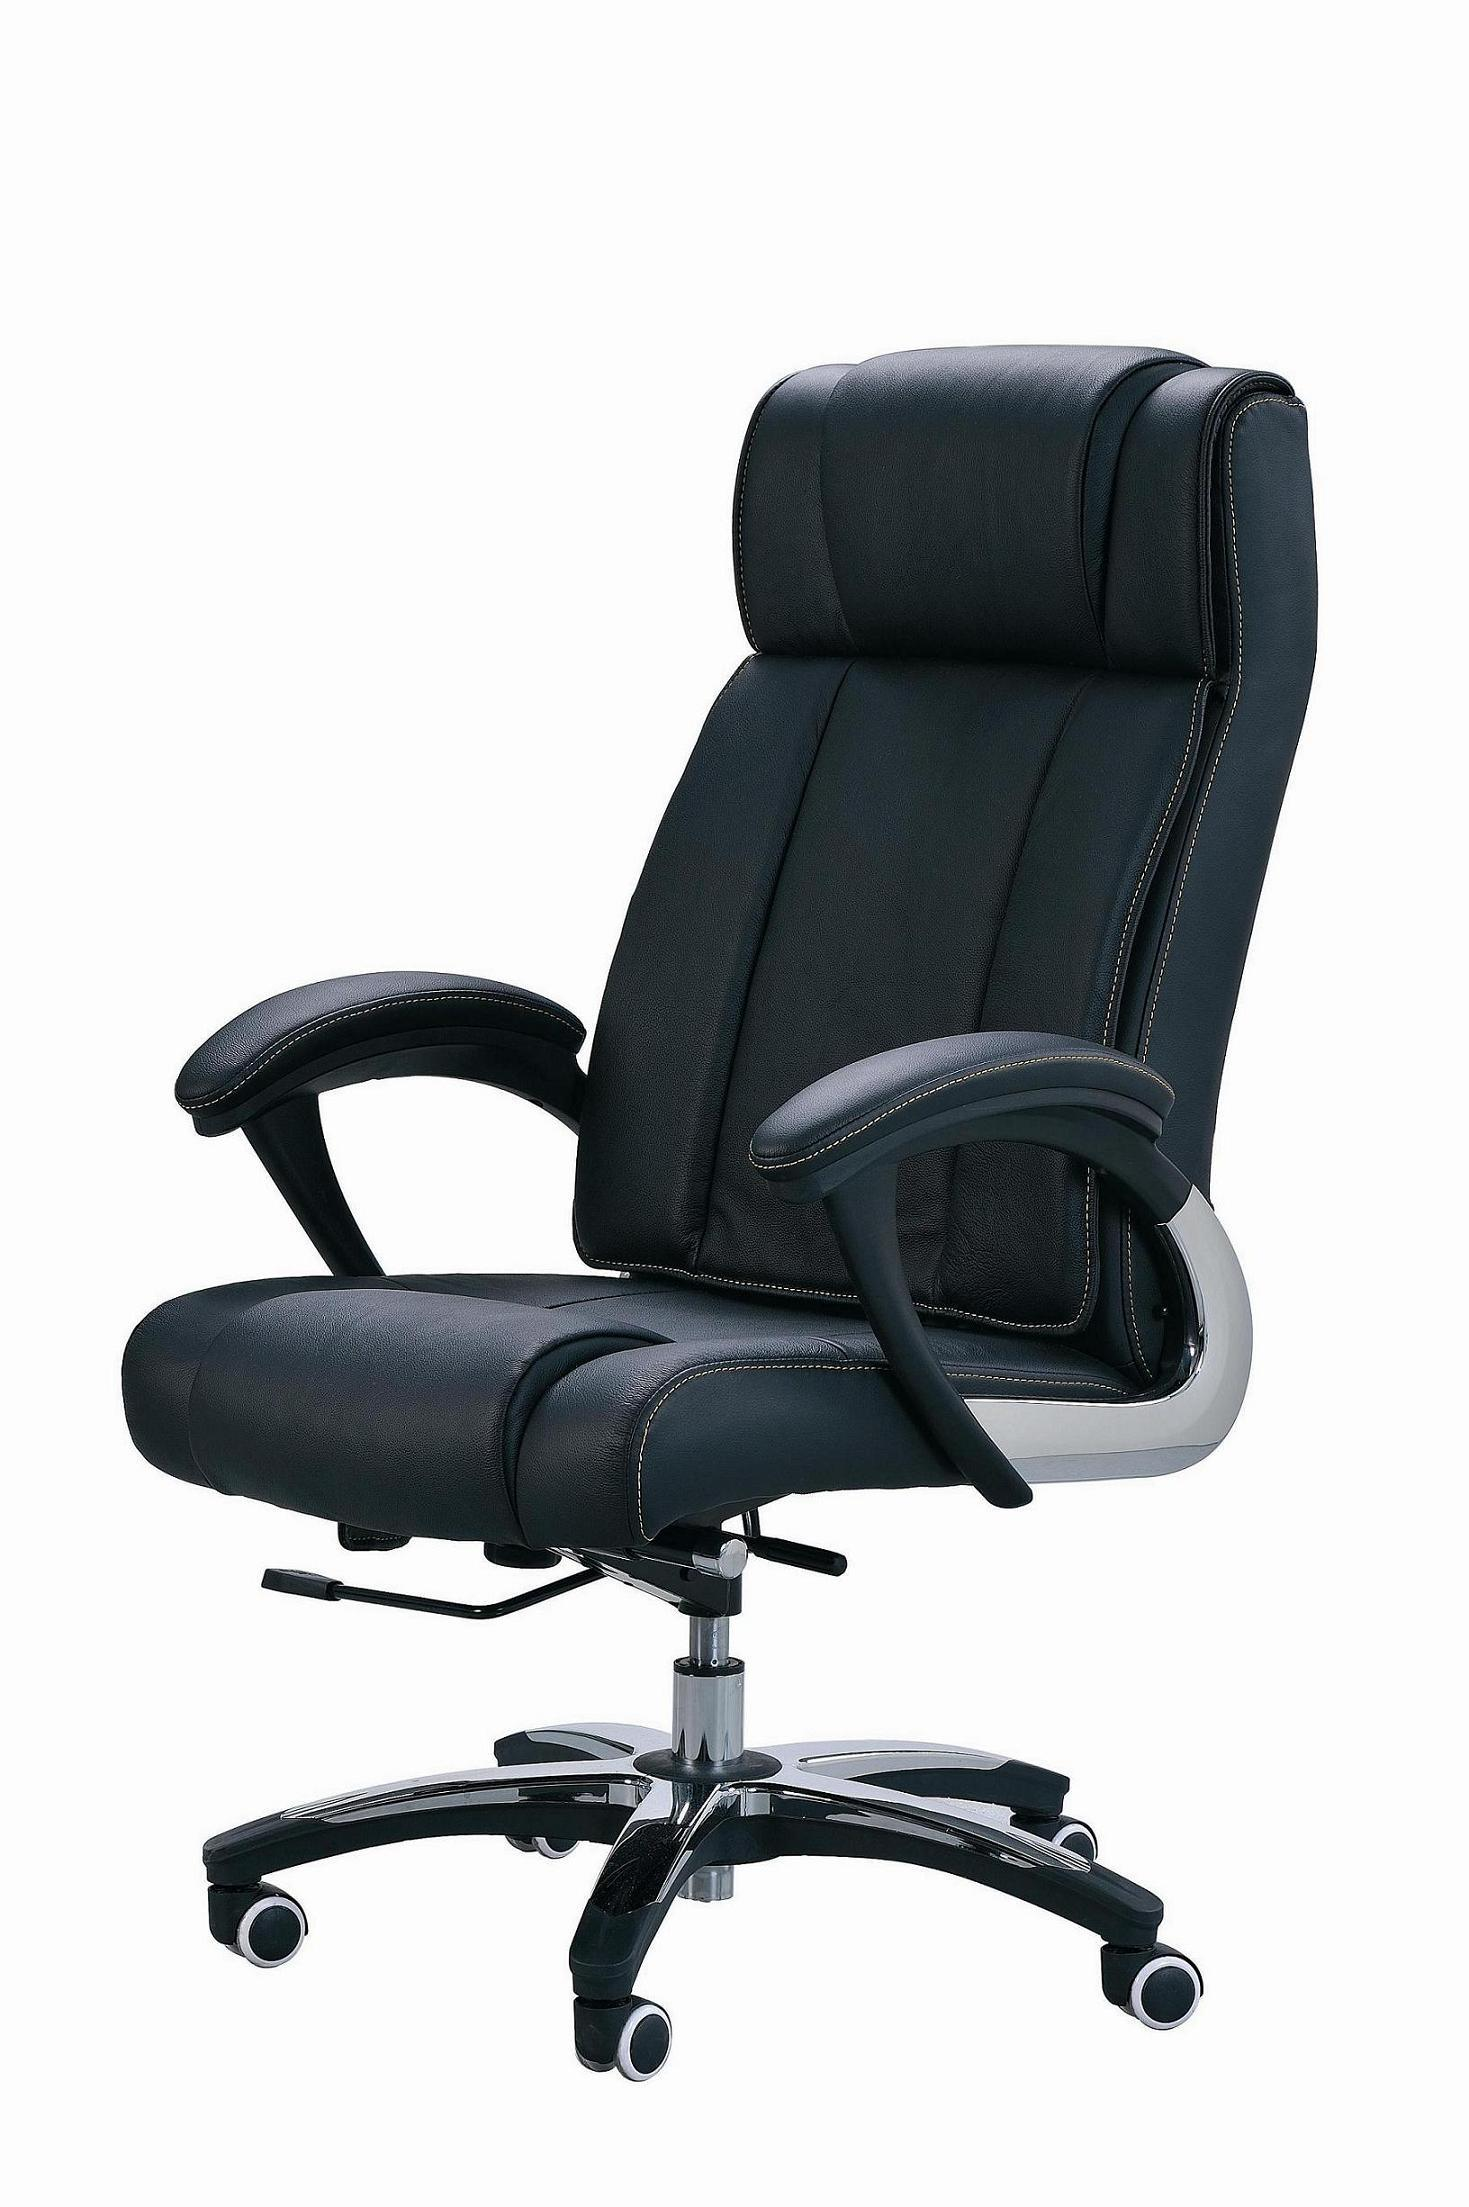 Office Chair Massager The Information Is Not Available Right Now